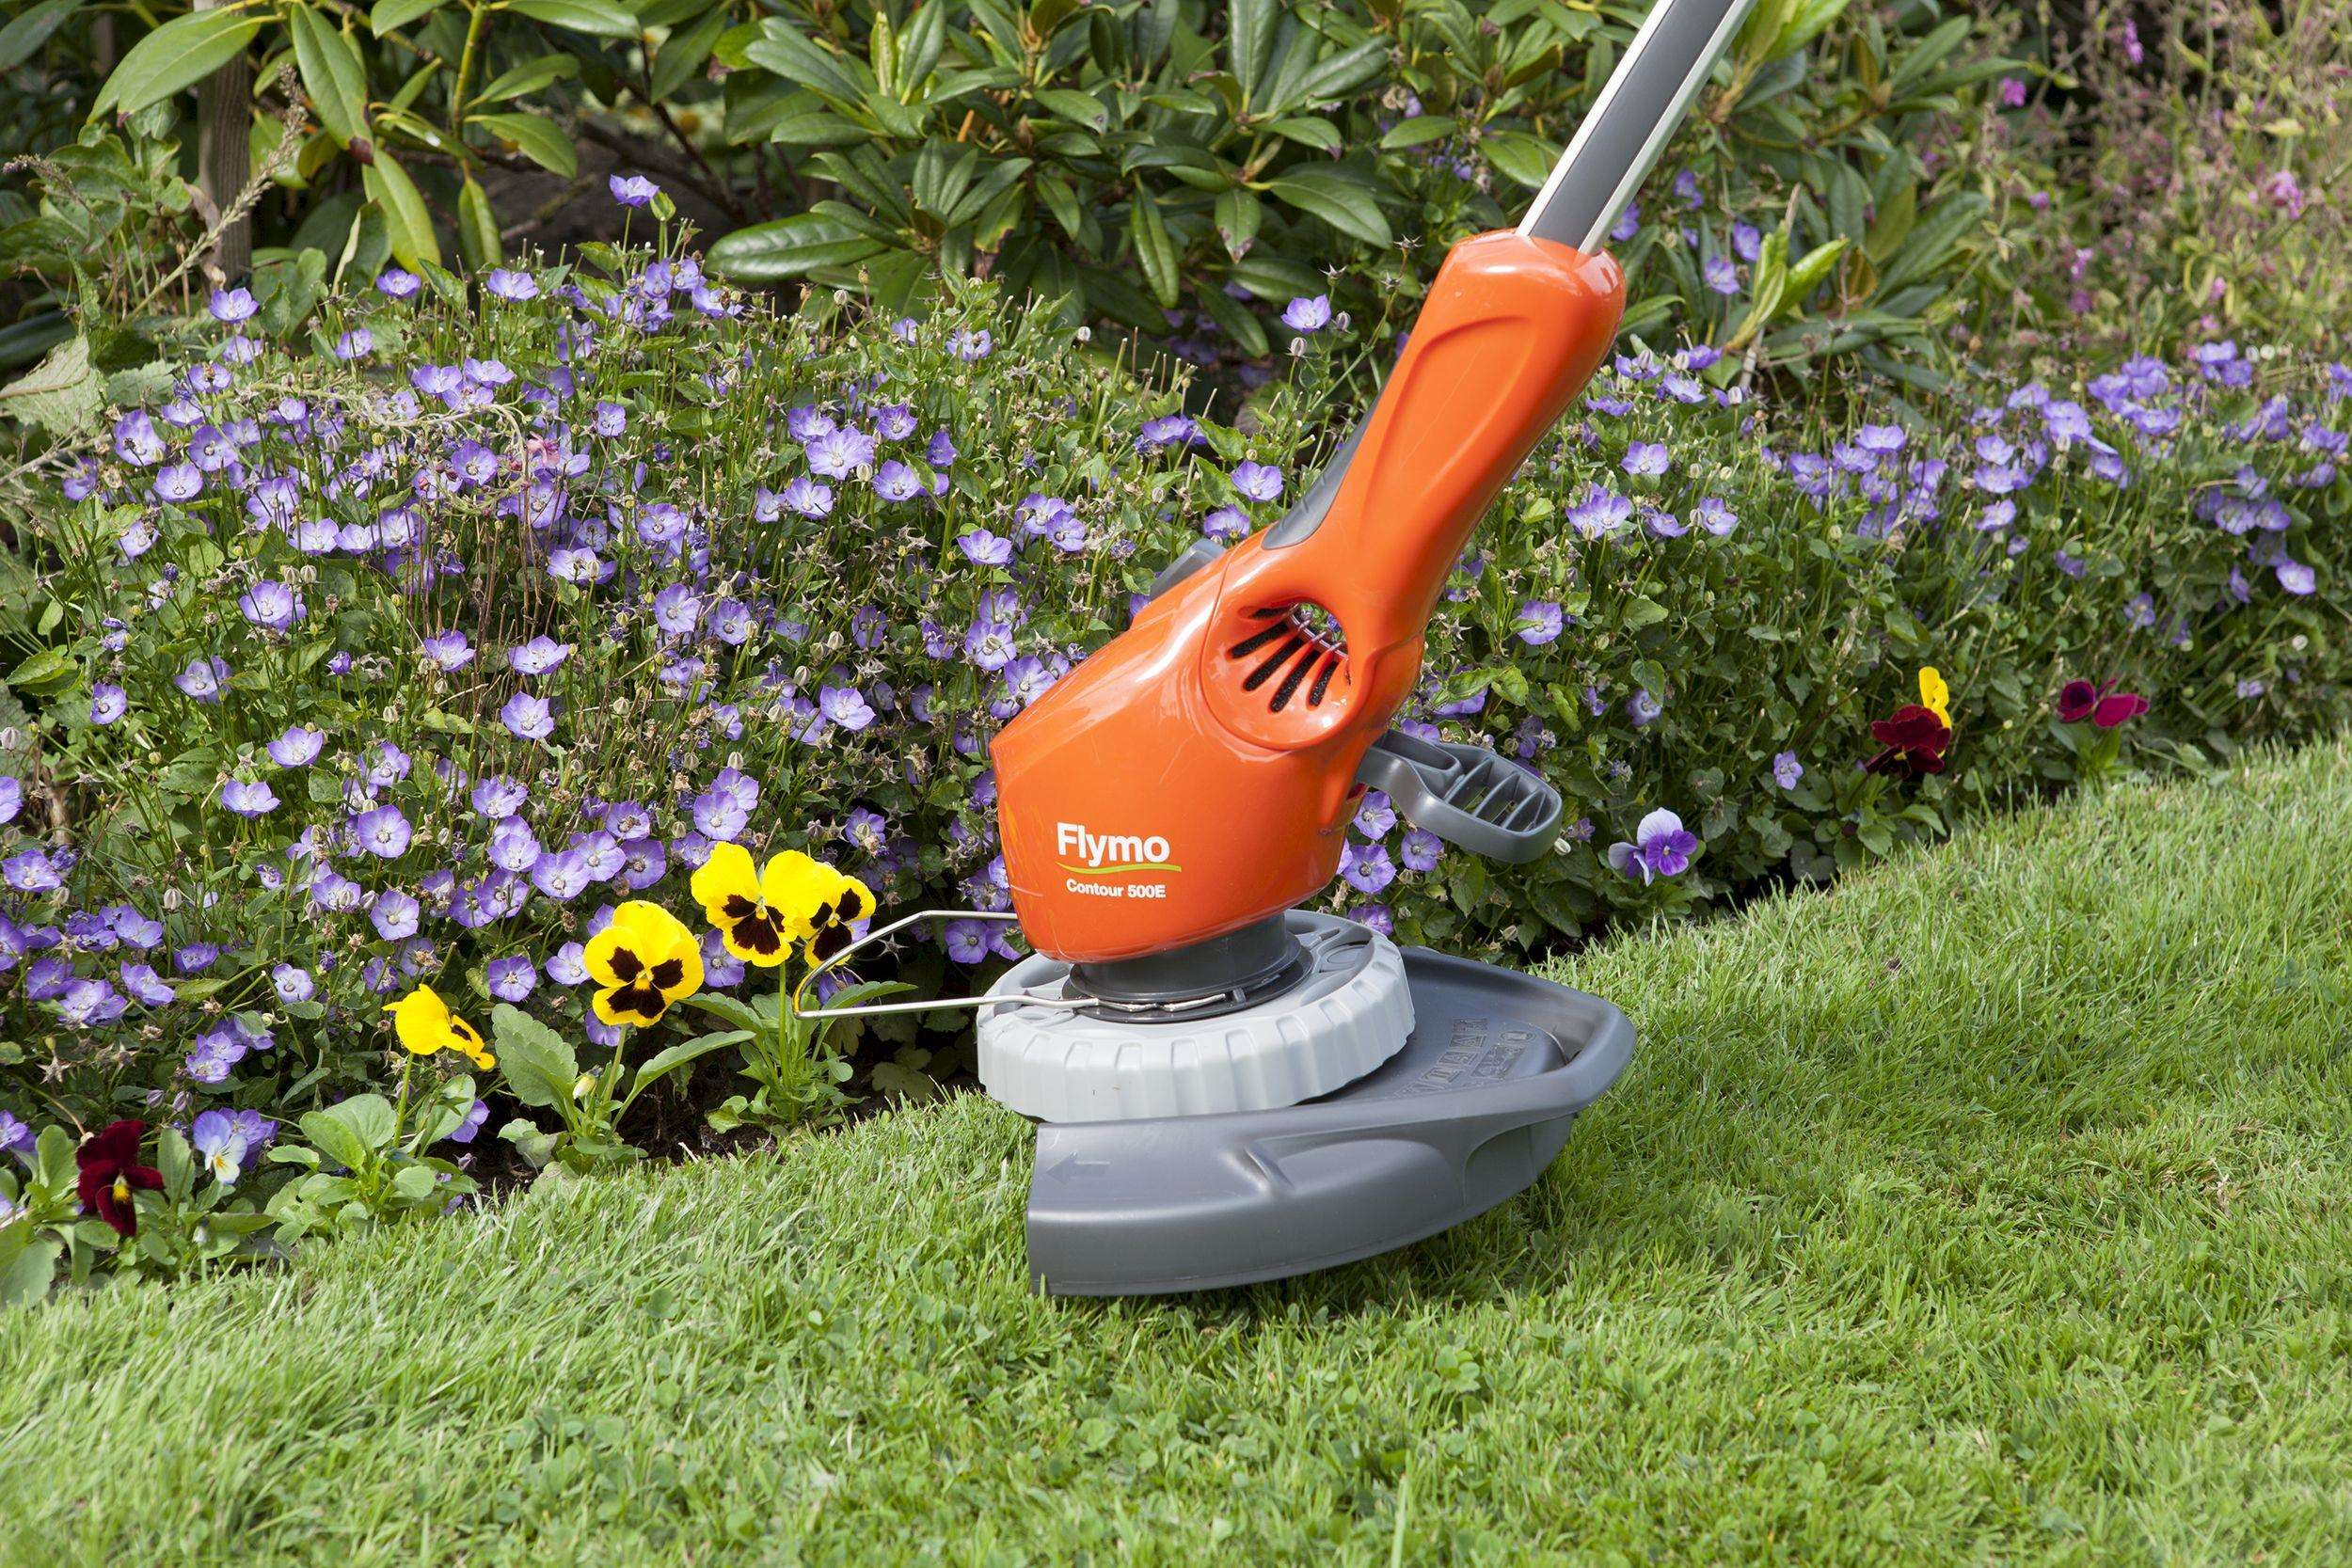 Win a Flymo grass trimmer ready for summer!, Flymo Contour 500E 2%, uncategorised%